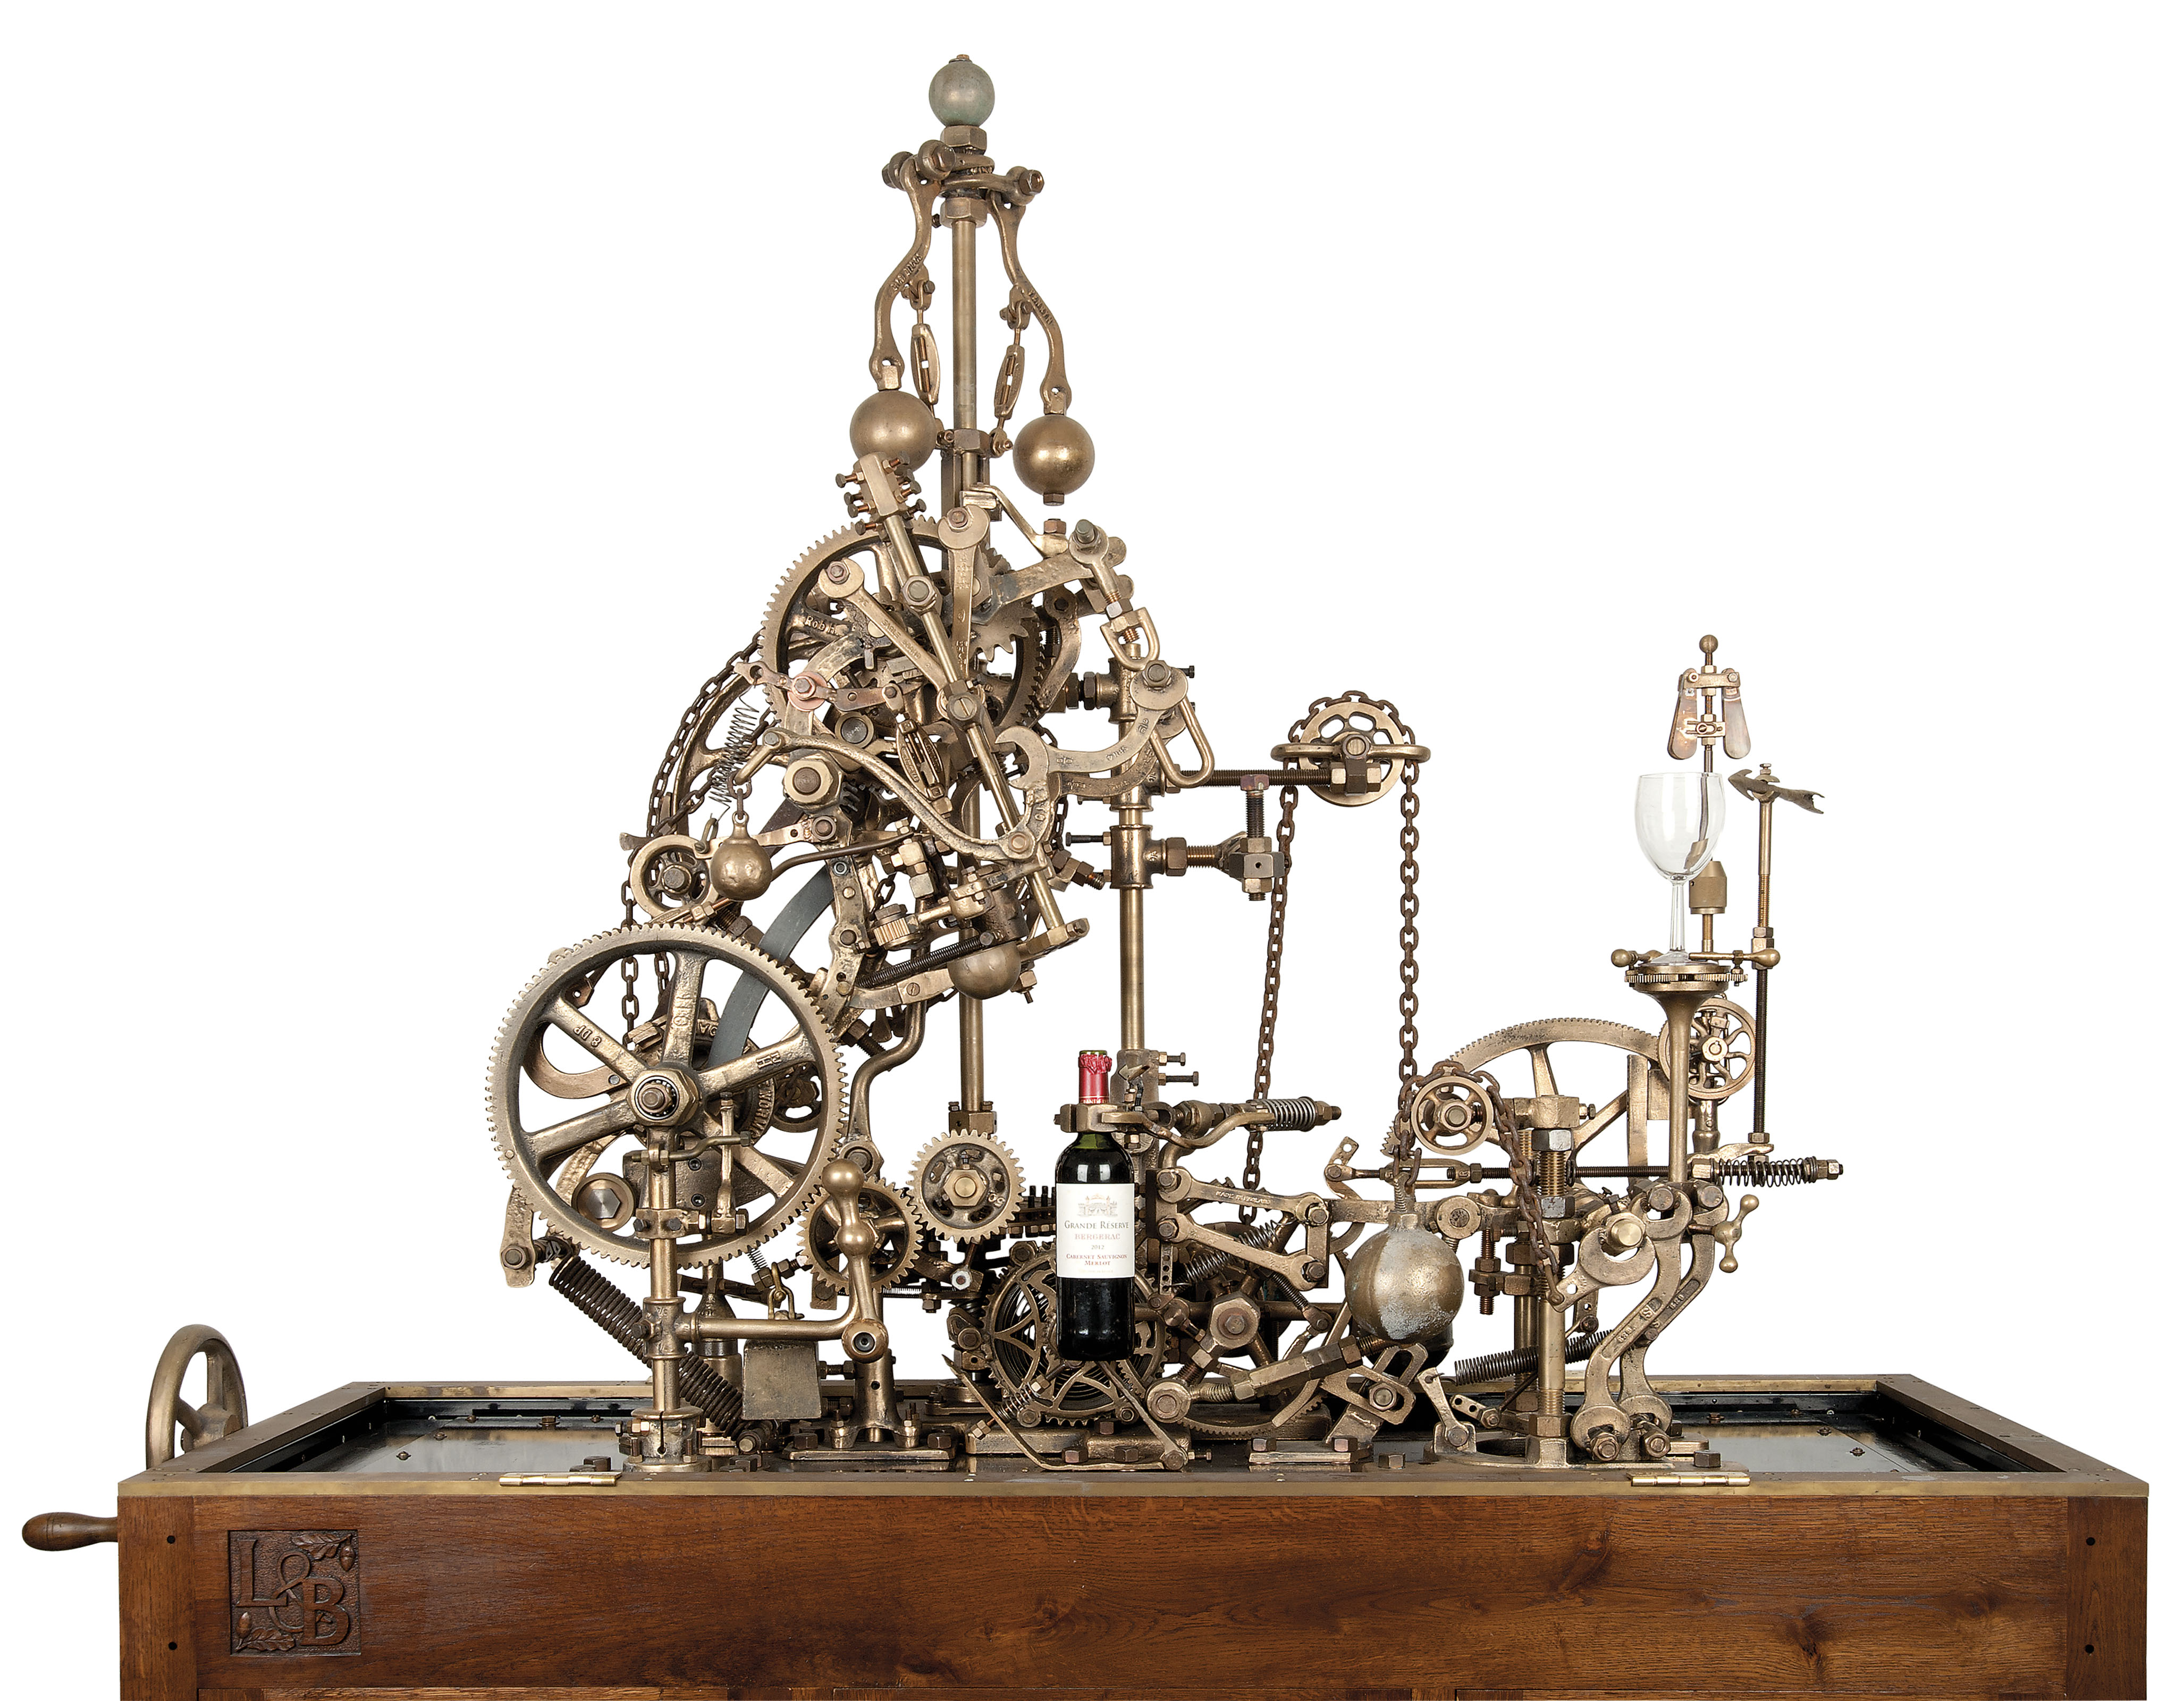 A MECHANICAL CORKSCREW AND WIN